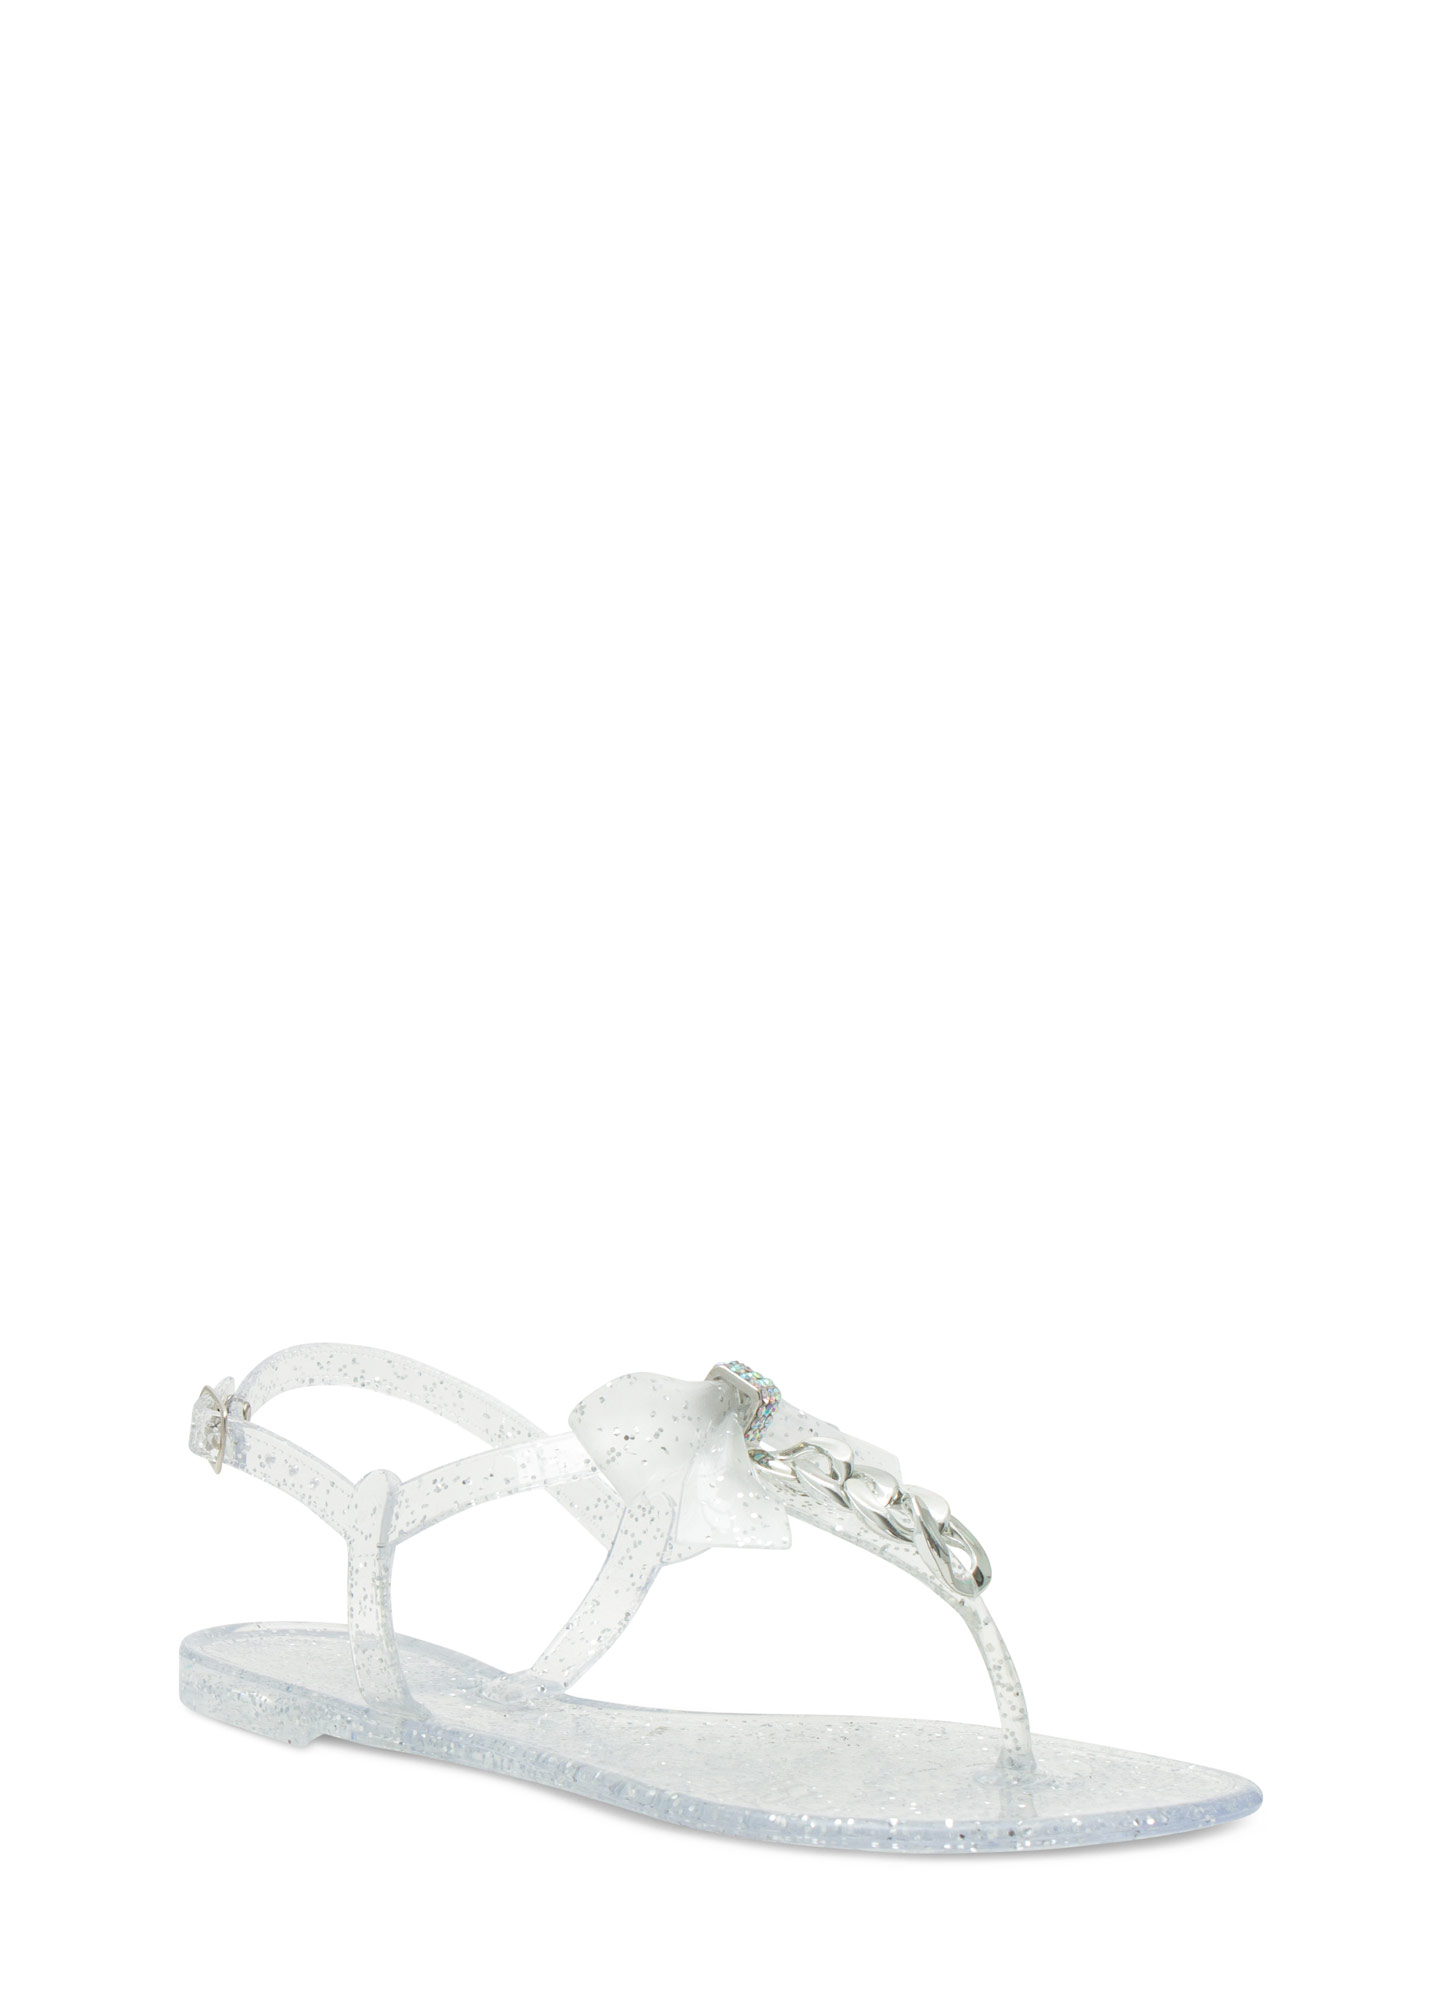 Bow 'N Chain Jelly Thong Sandals CLEAR